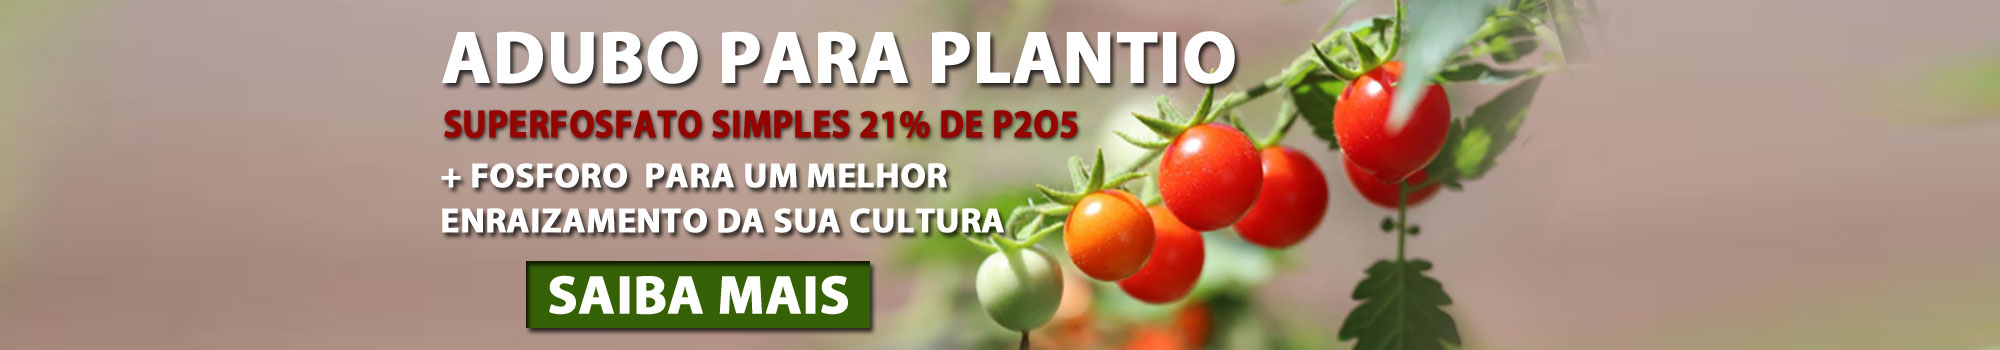 Fullbanner-Adubo-Superfosfato Simples 21% de P2O5